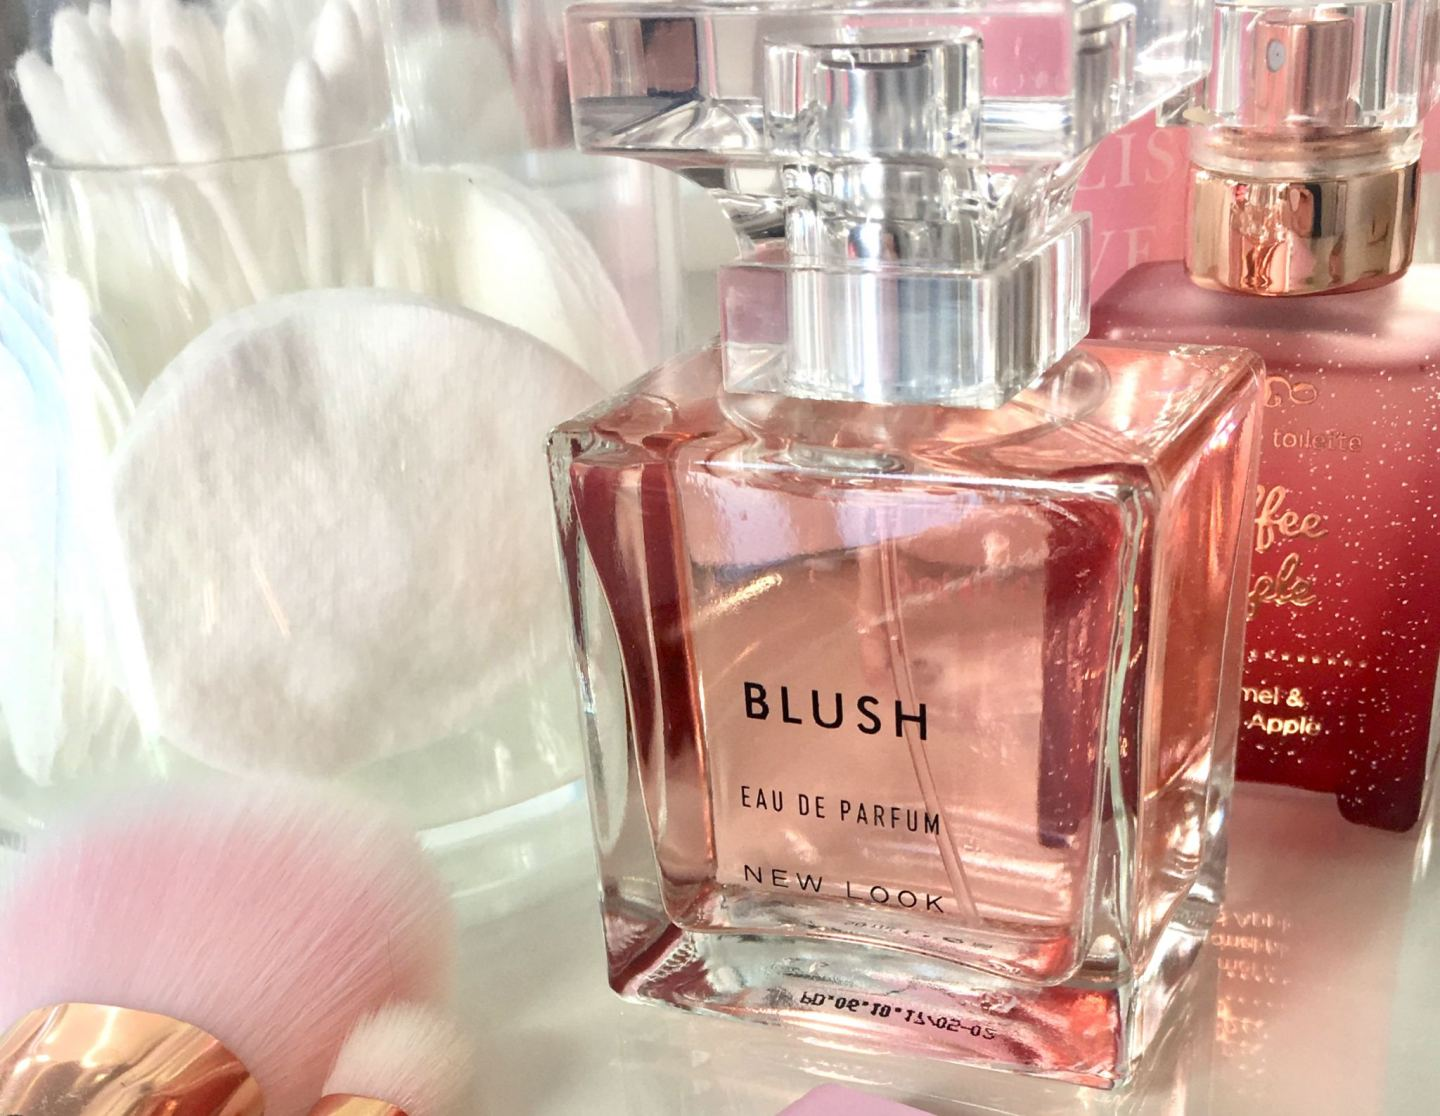 Blush By New Look Its A Coco Dupe The Beauty Spyglass Chanel Edp 100ml Mademoiselle